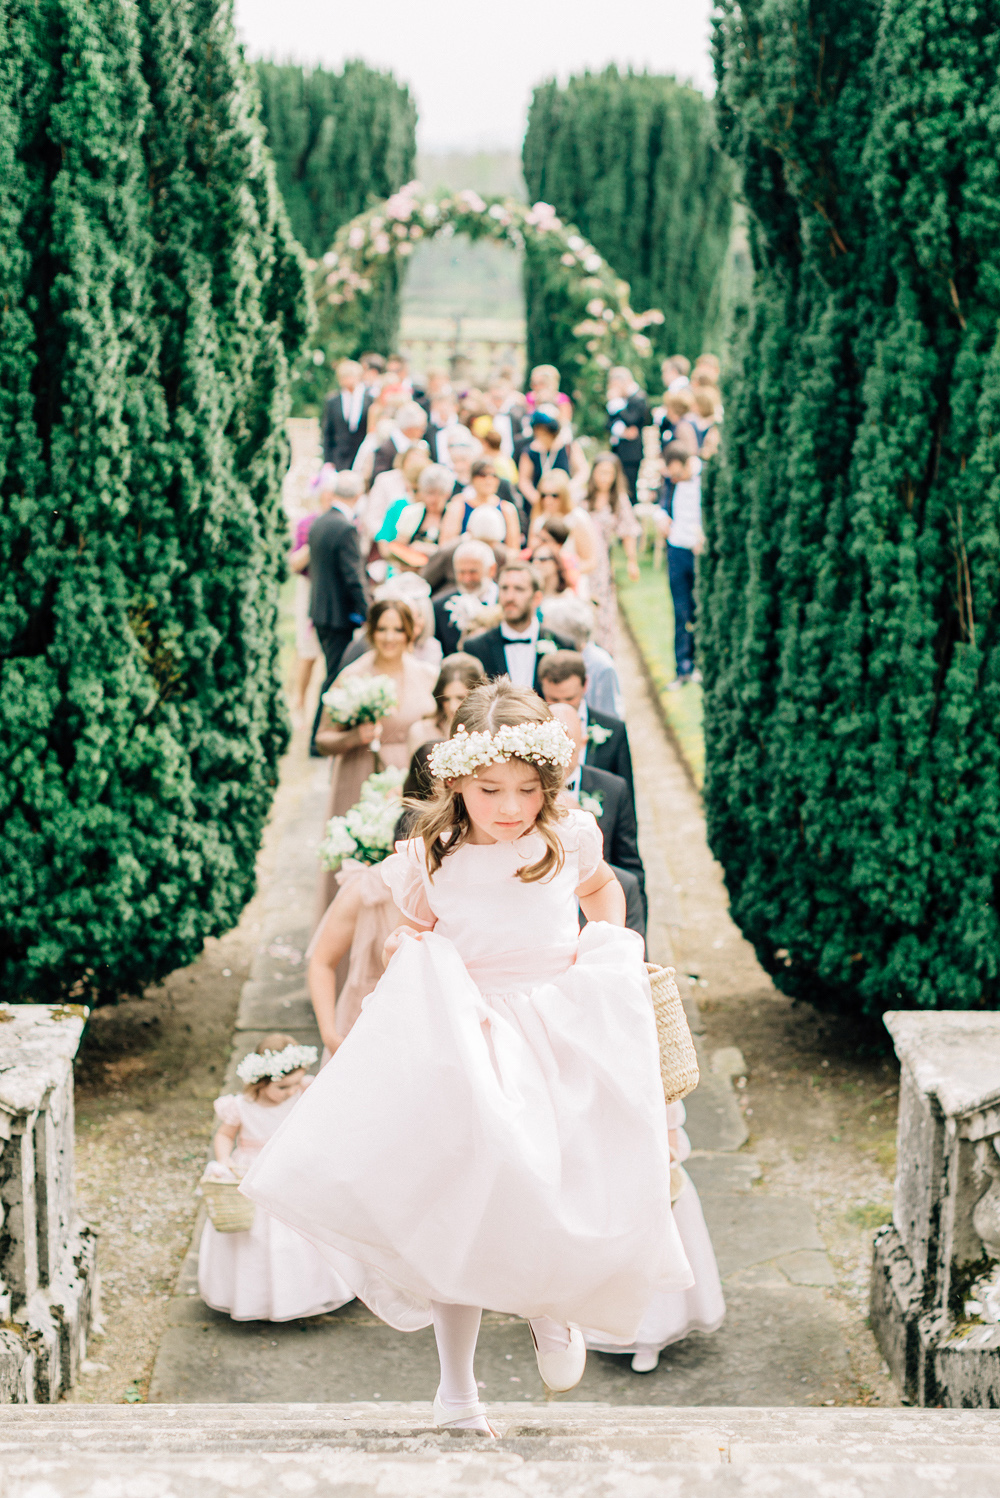 blathnaid daire wedding processional flower girl